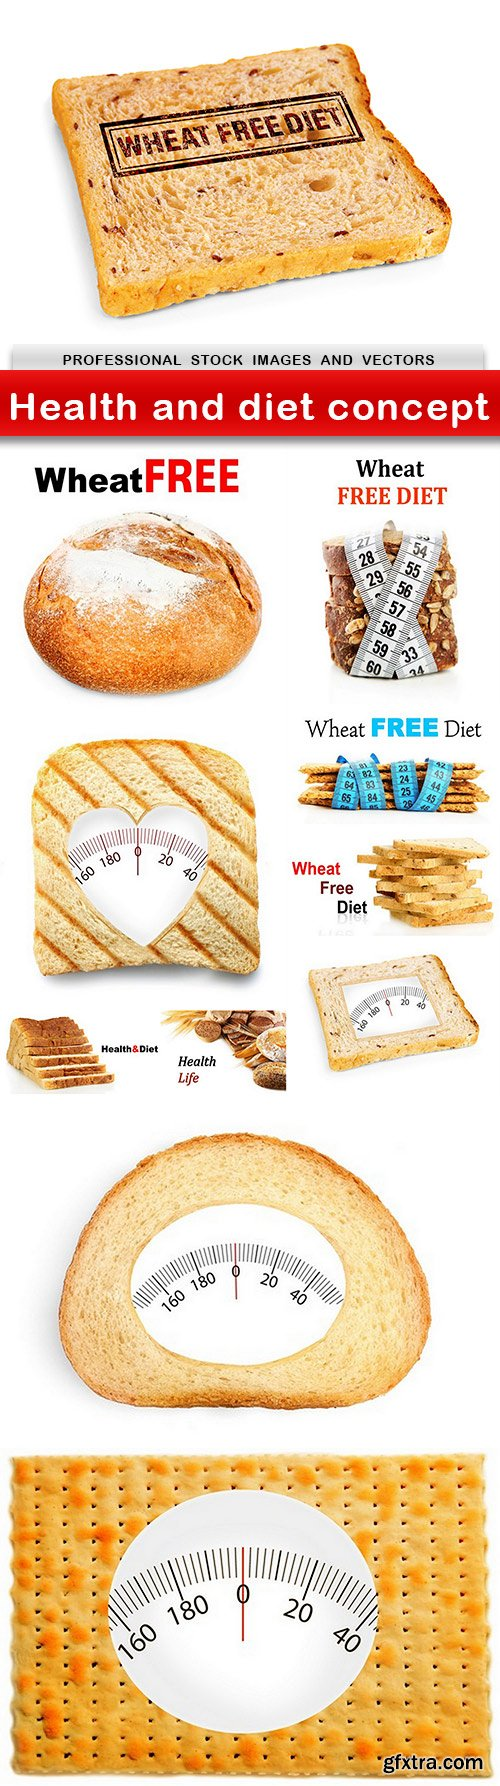 Health and diet concept - 11 UHQ JPEG